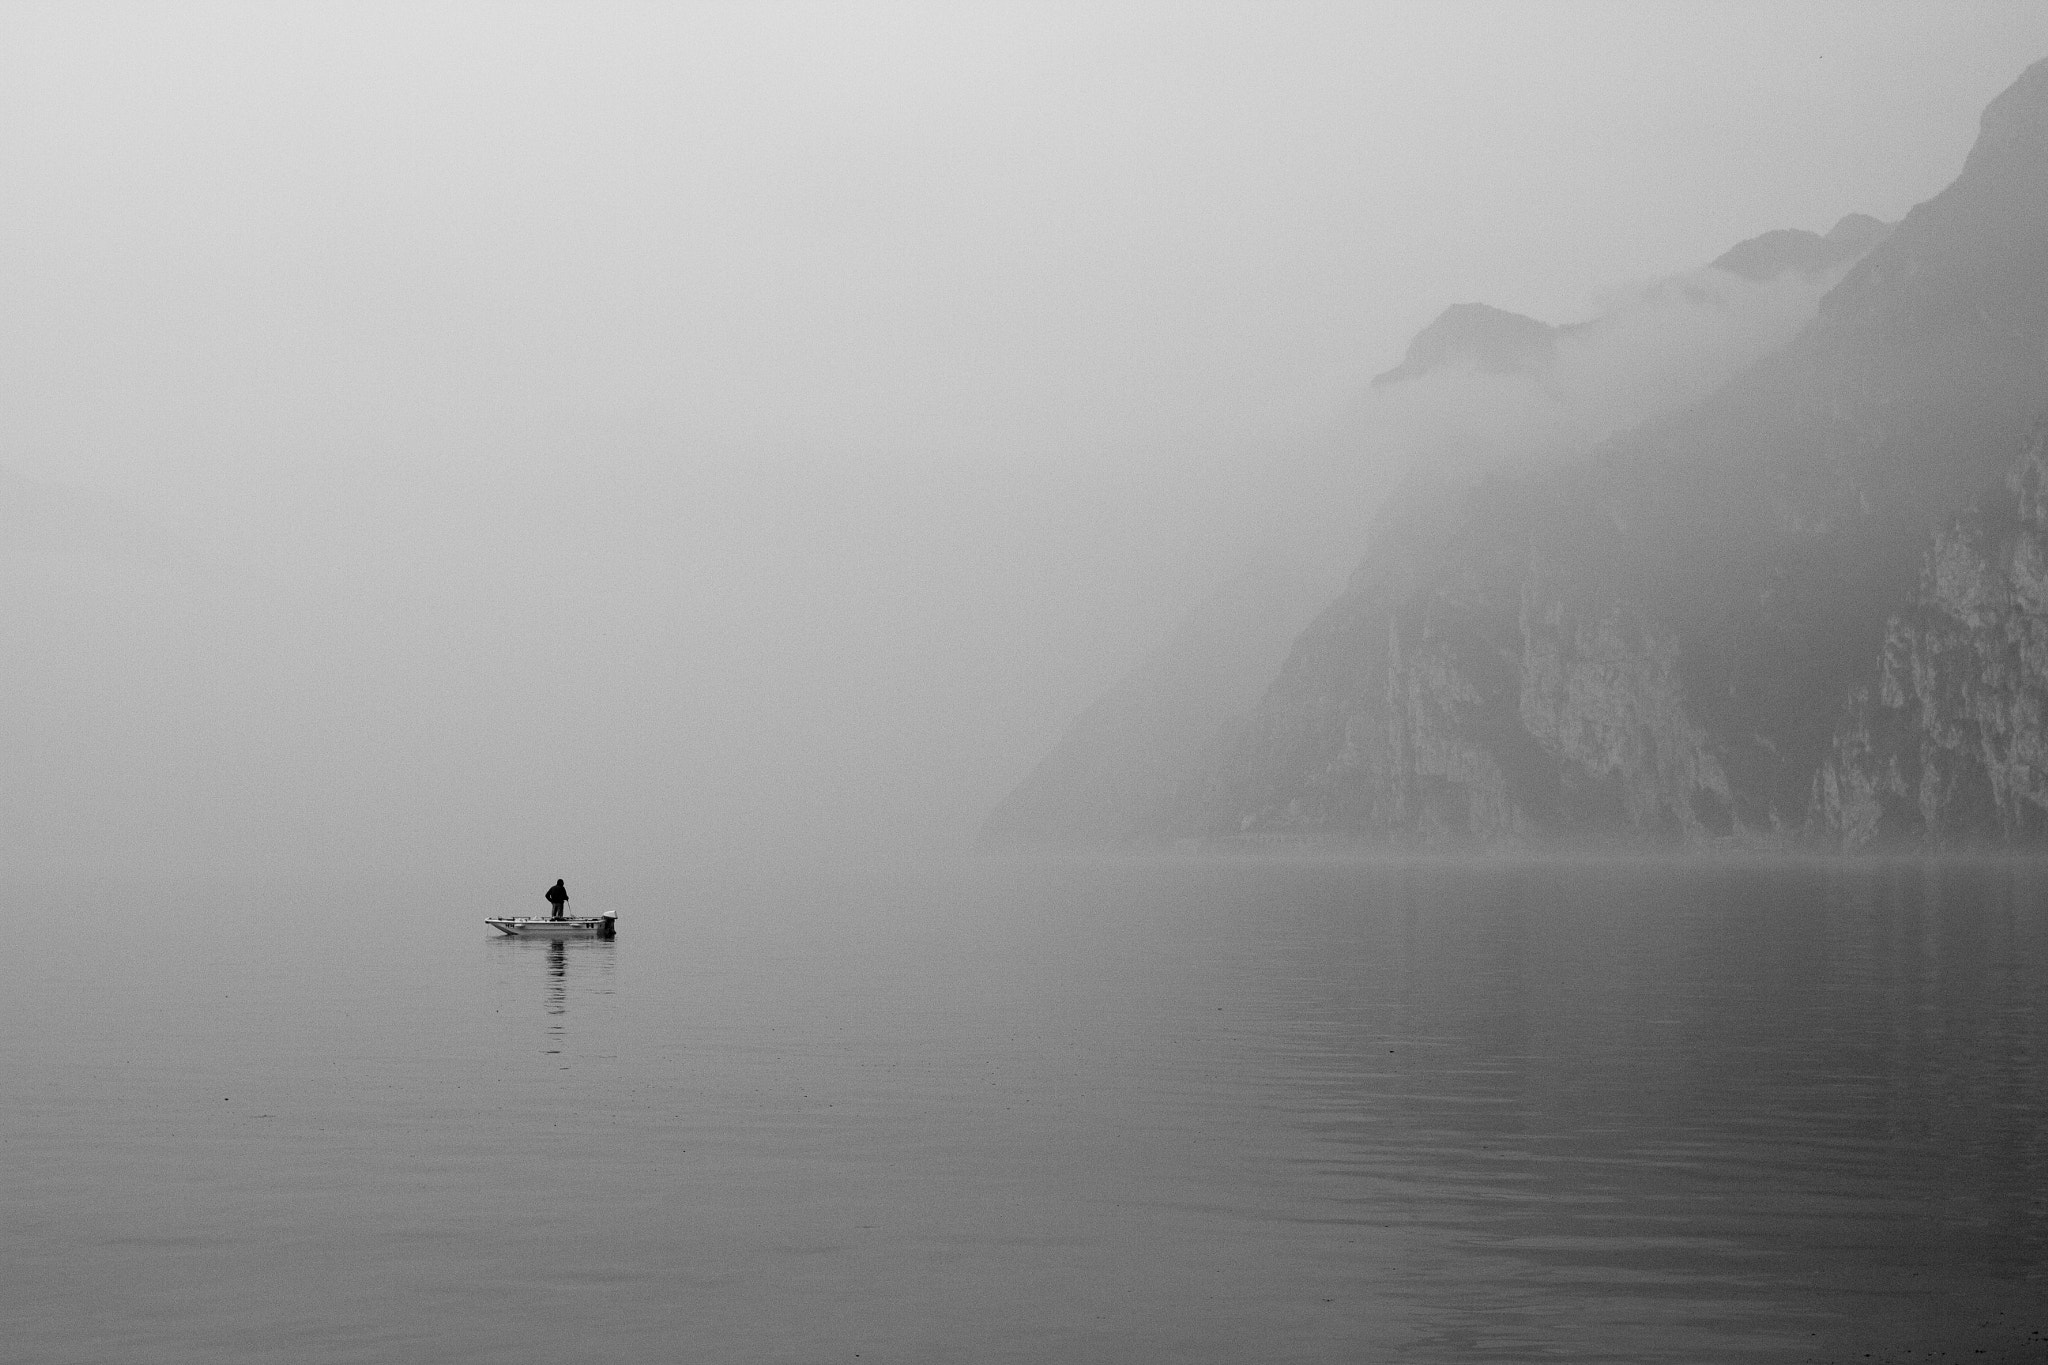 Photograph Fishing  by Michael B. on 500px